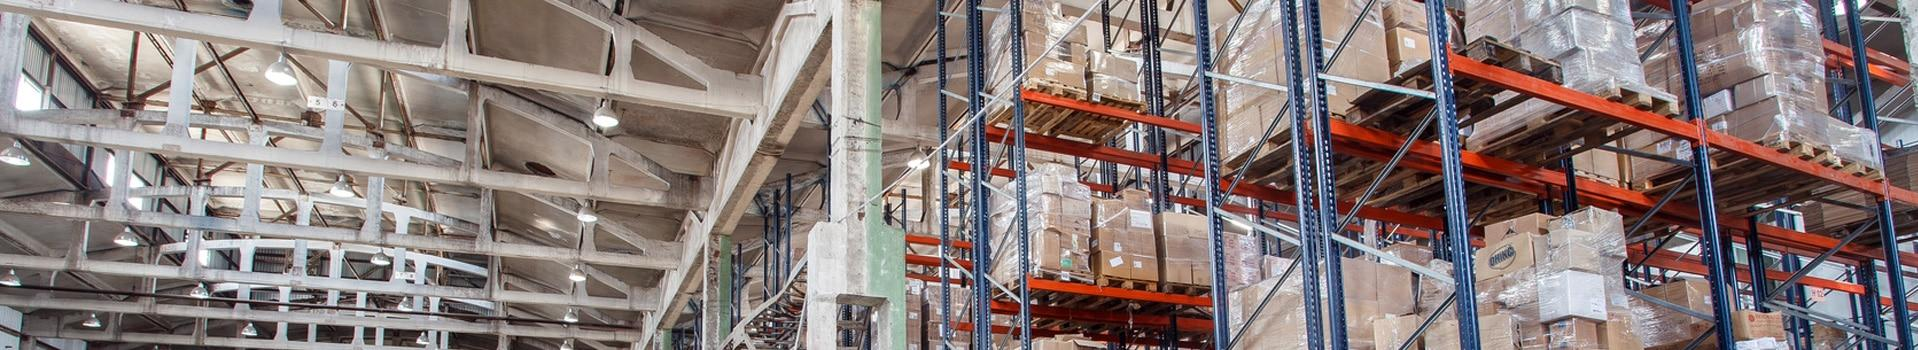 fall protection for distribution and fulfillment centers